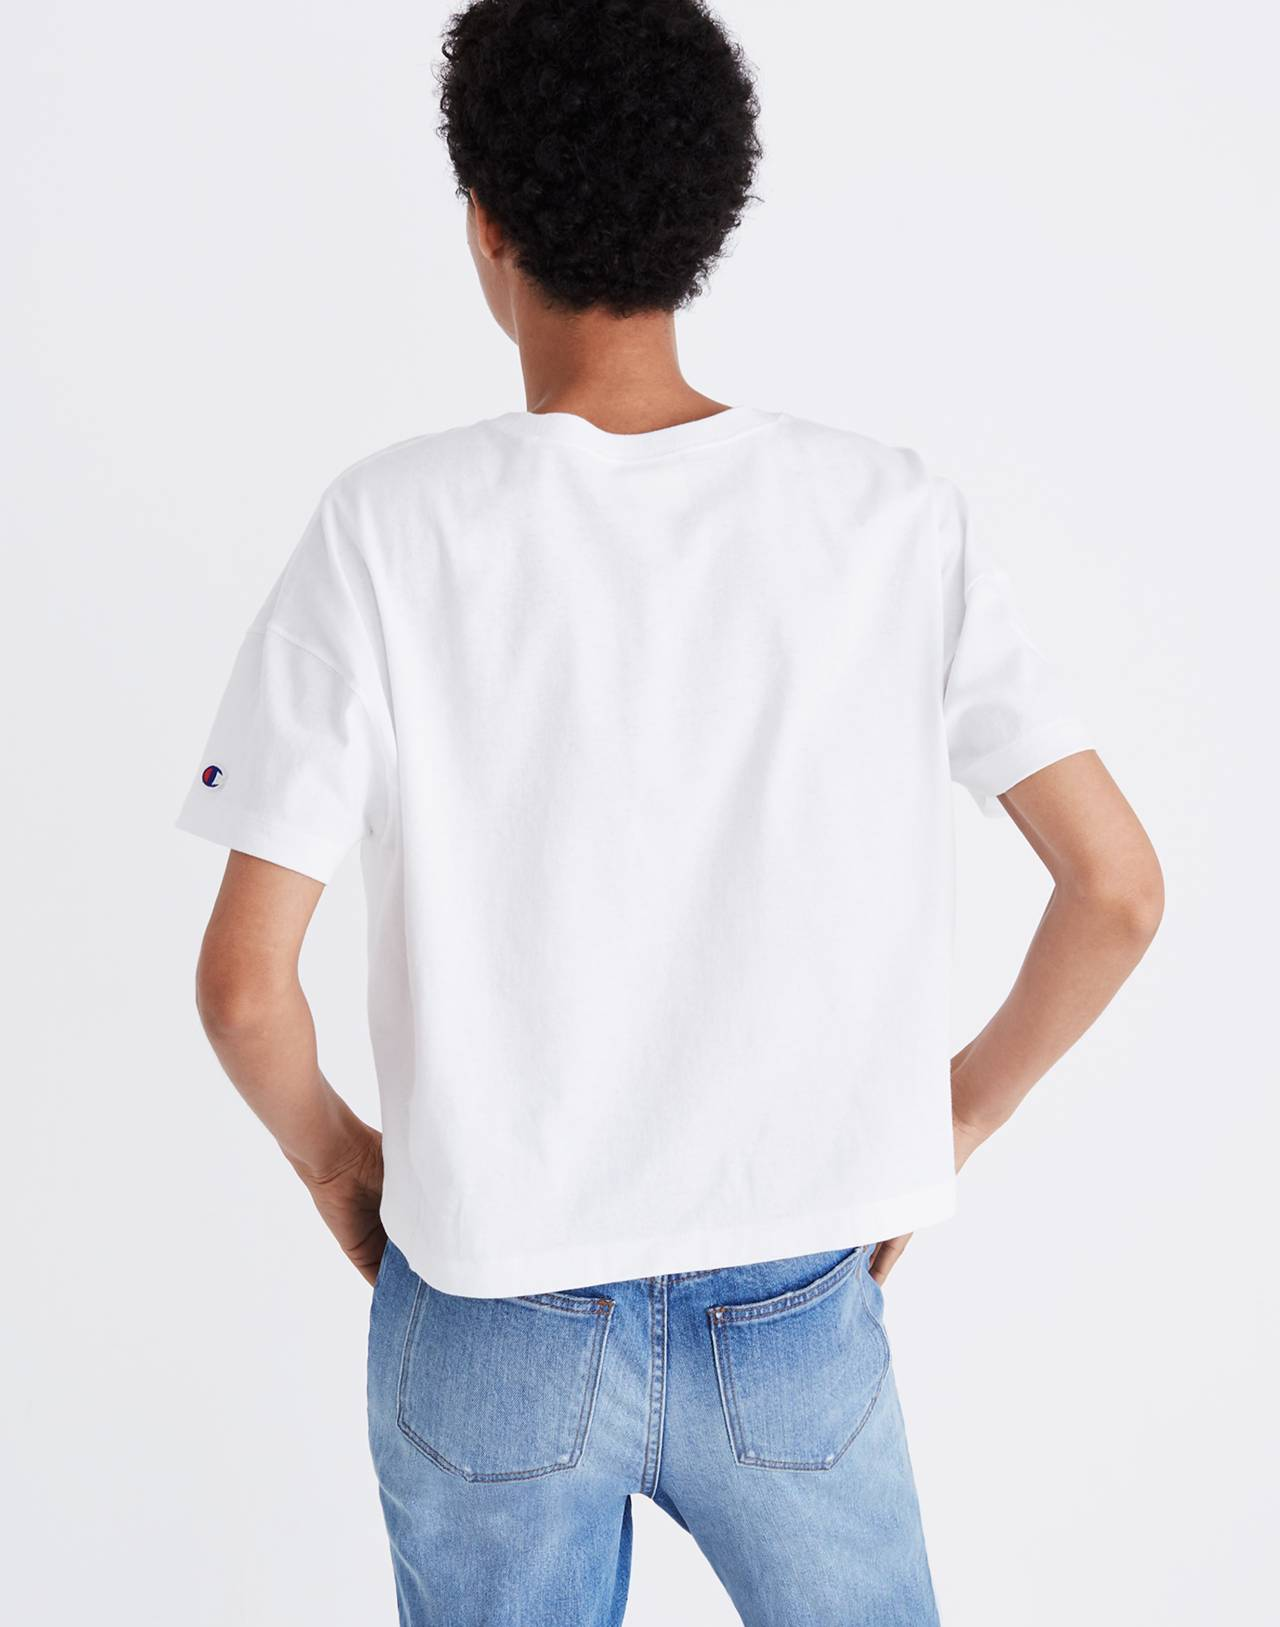 Champion® Oversized Tee in white image 2